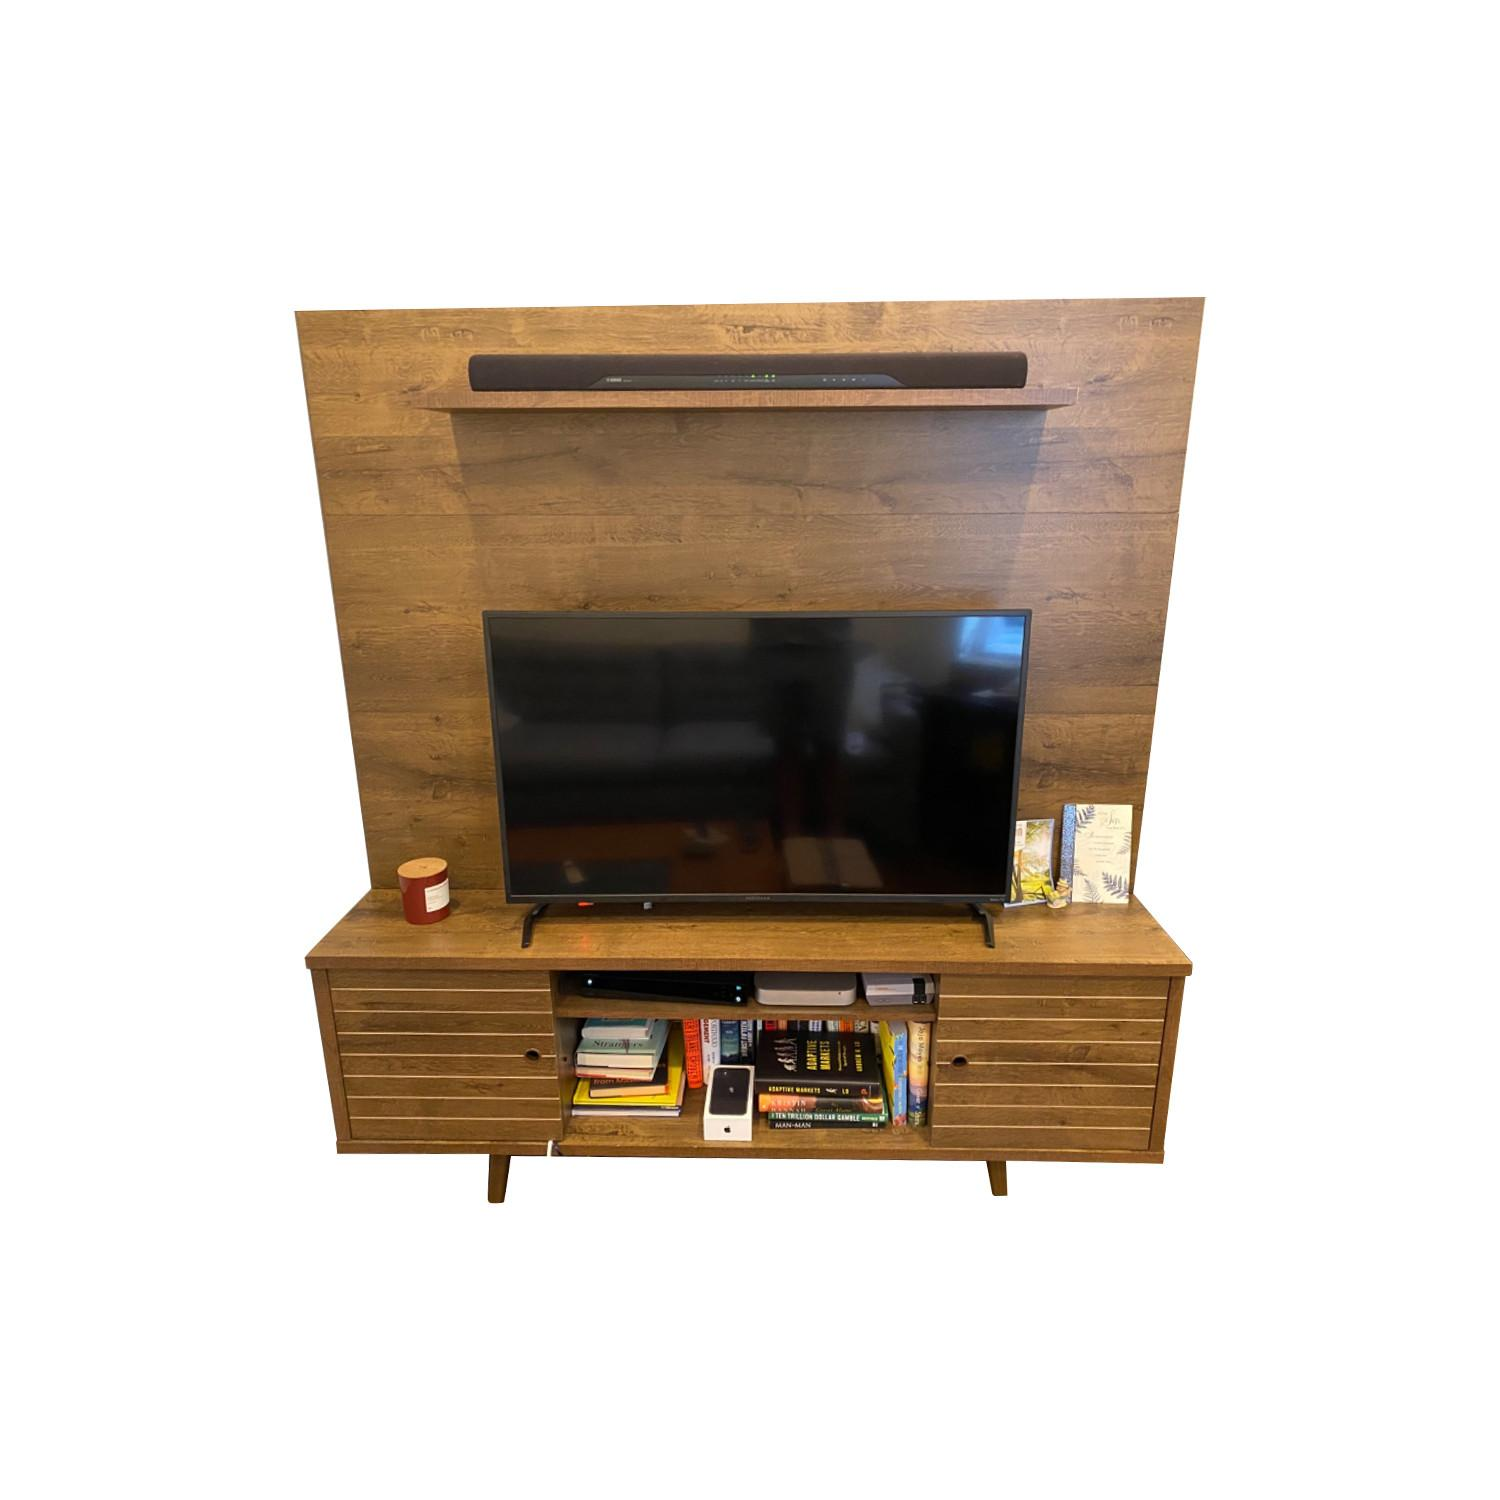 Wayfair Entertainment Center w/ TV Cable Mgmt - image-0